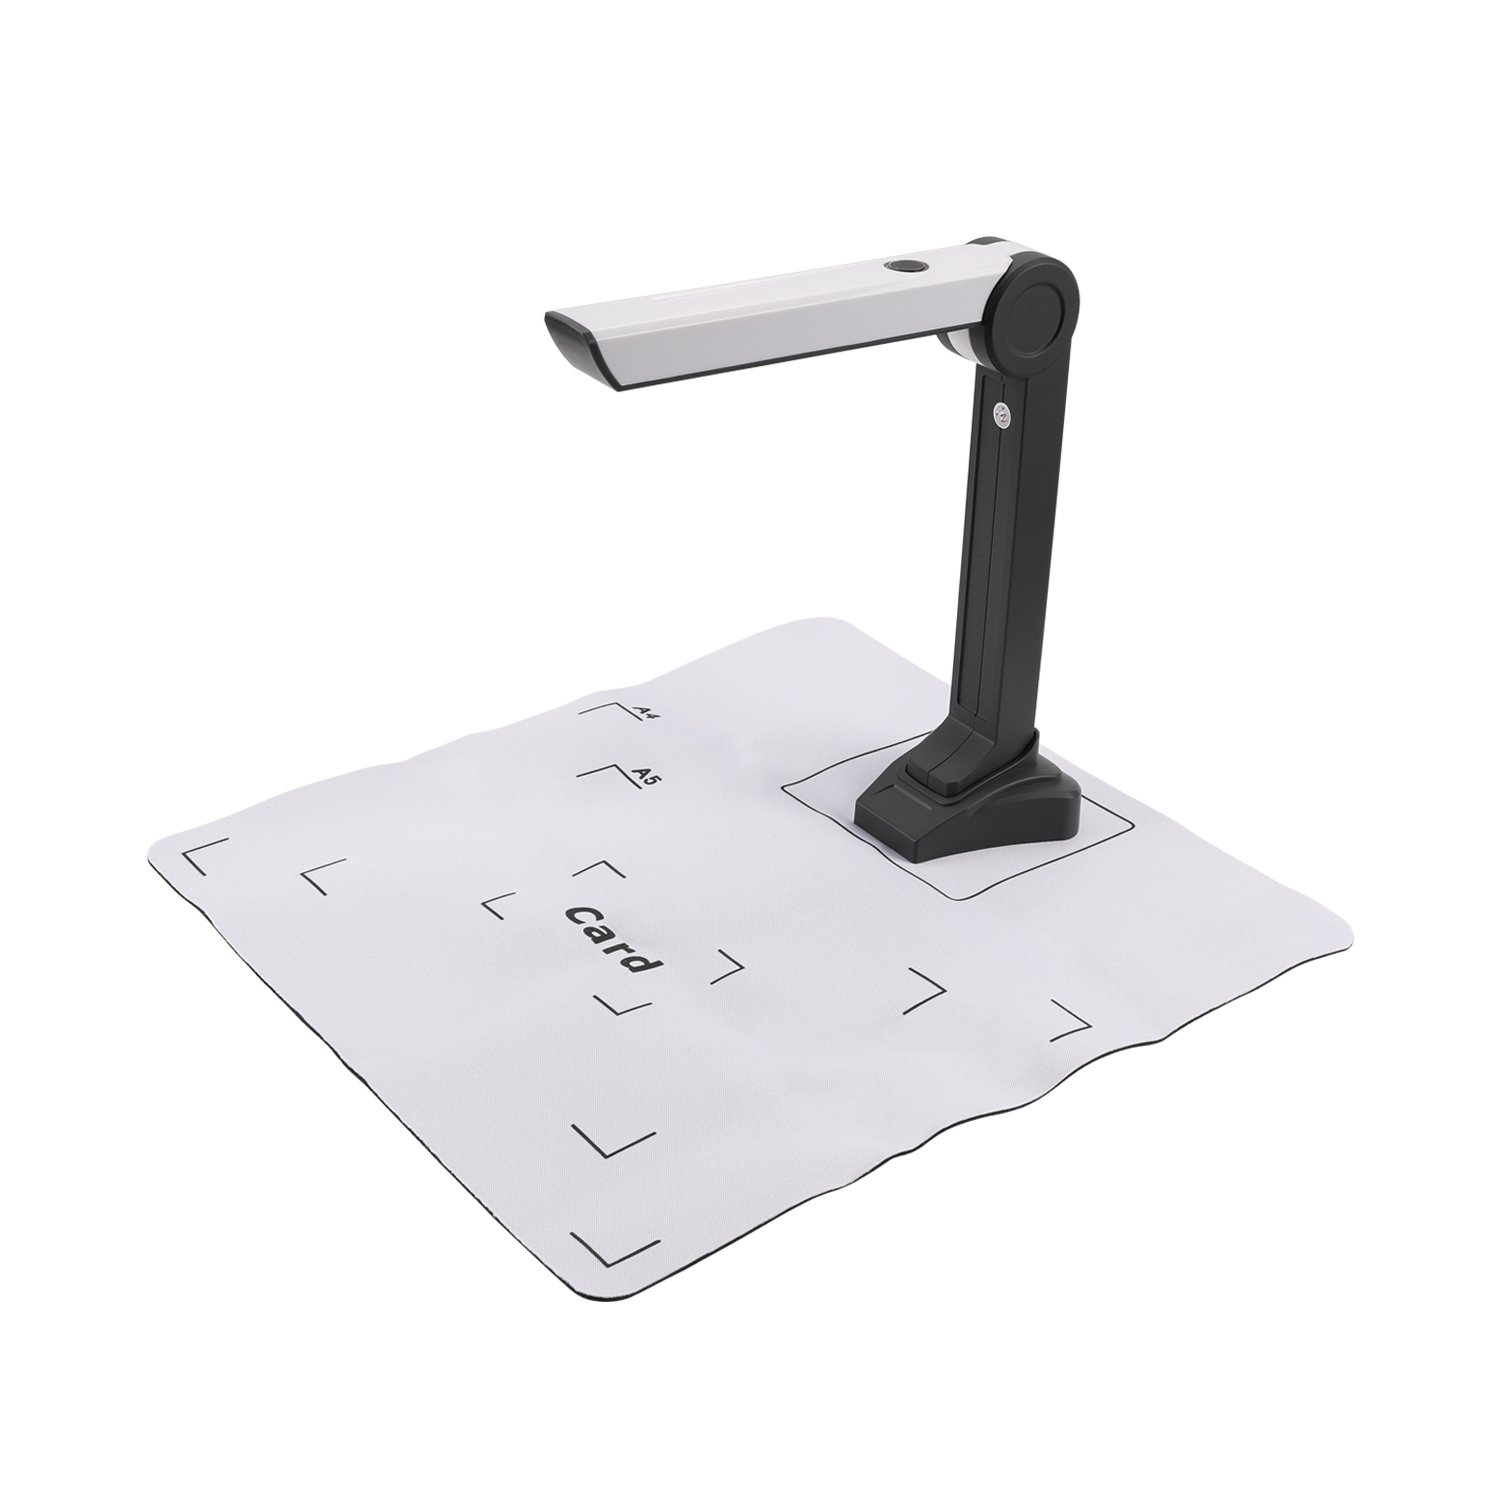 eloam Mini Document Camera Scanner S200L ,OCR,Time Shooting,Video Recording for Office,Education Presentation Solution